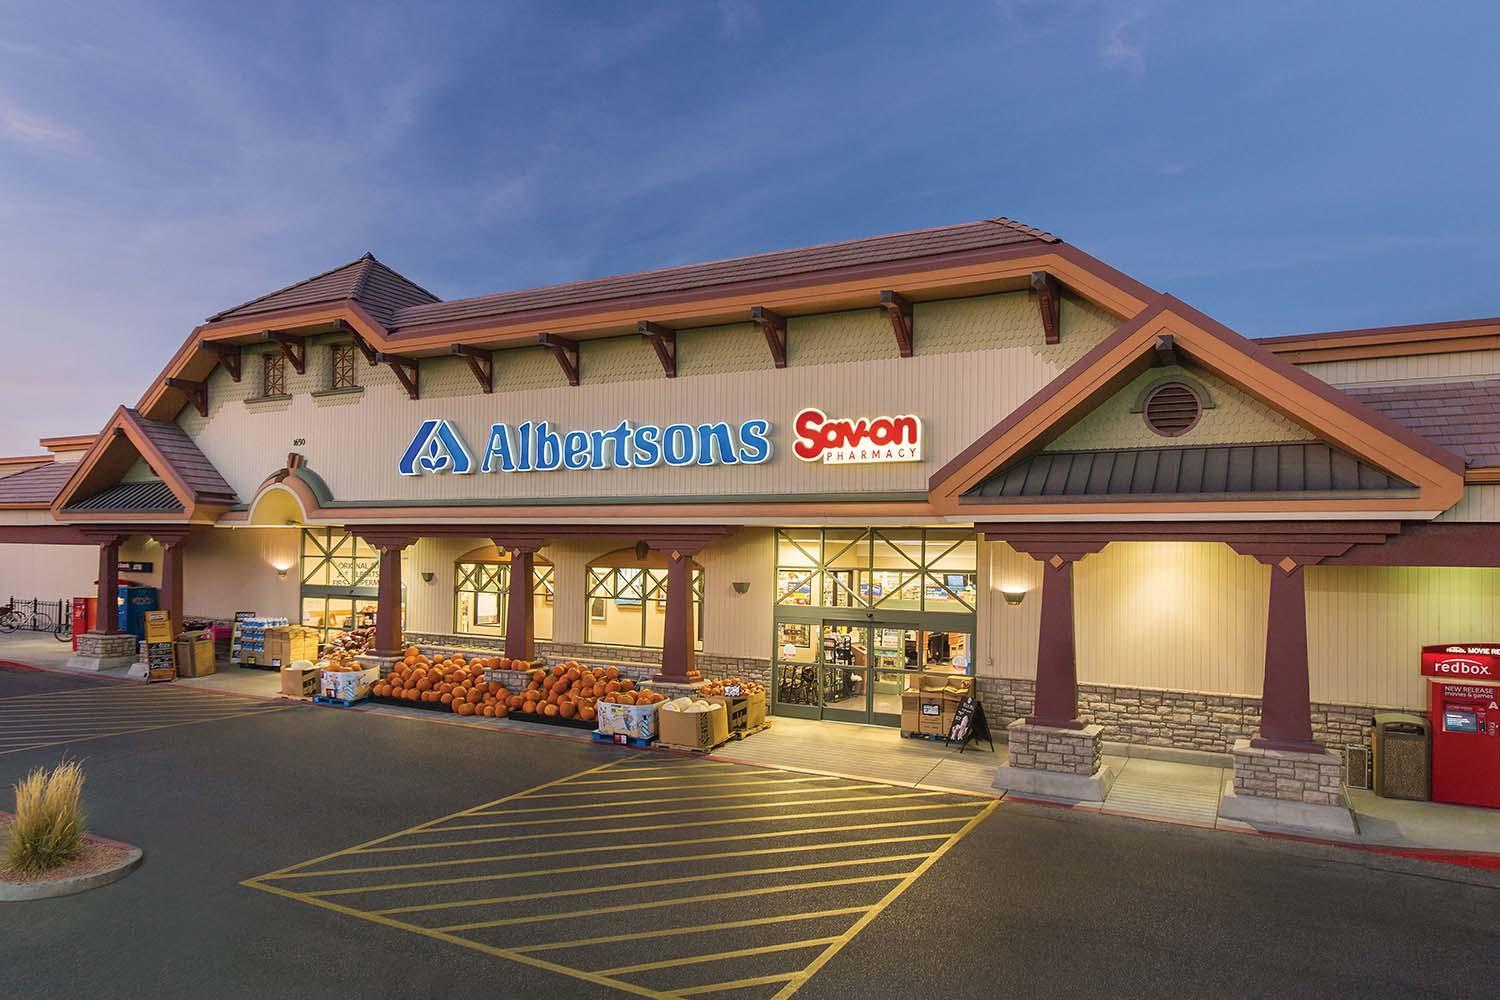 Albertsons Store Front Picture - 8410 Farm Rd in Las Vegas NV